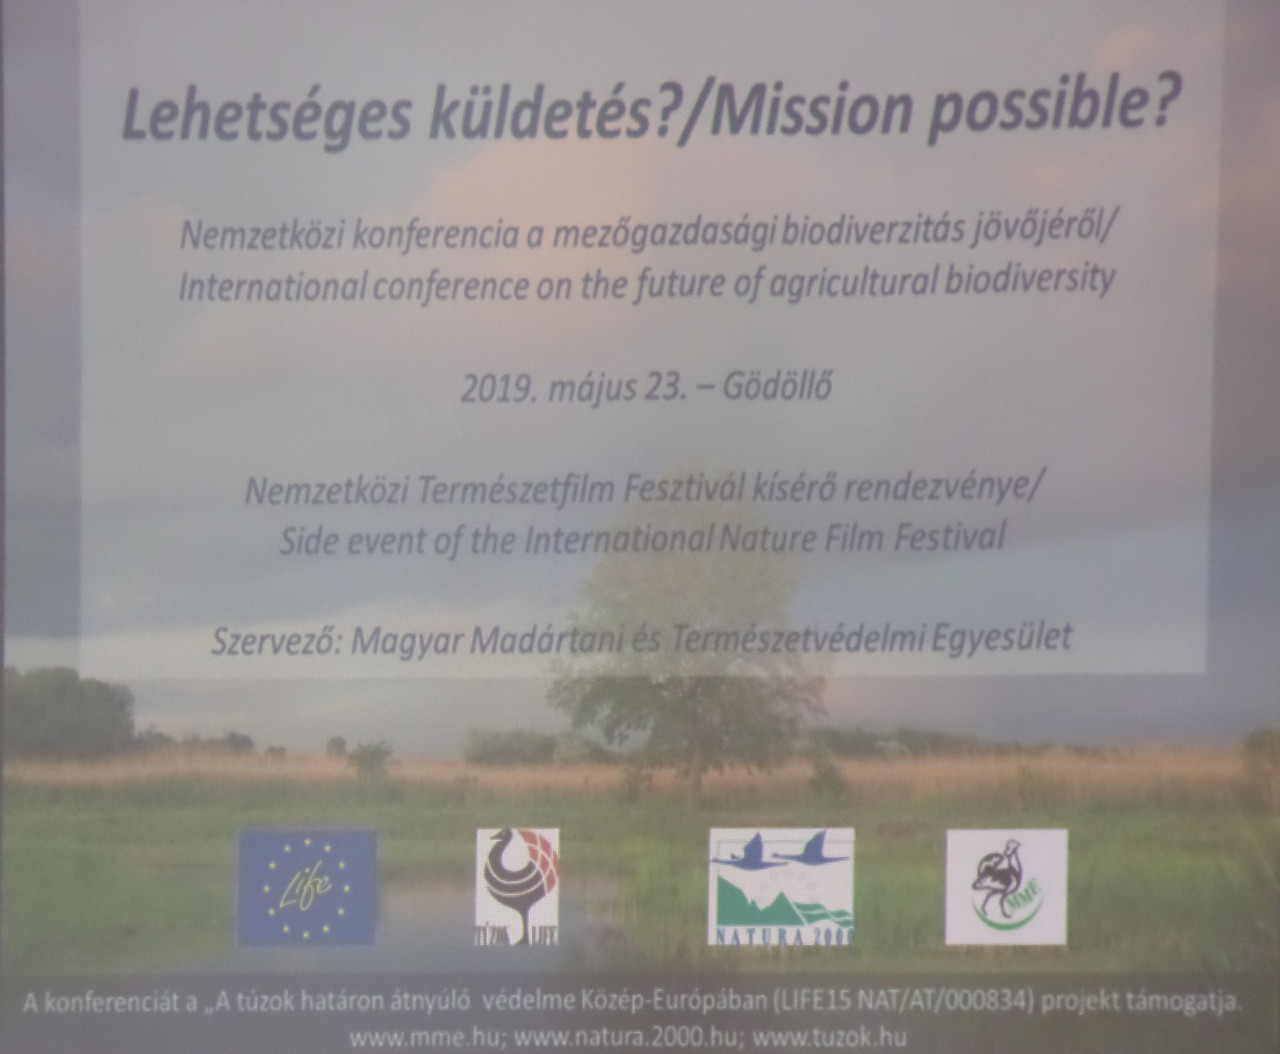 Mission possible? International Conference on Agricultural Biodiversity